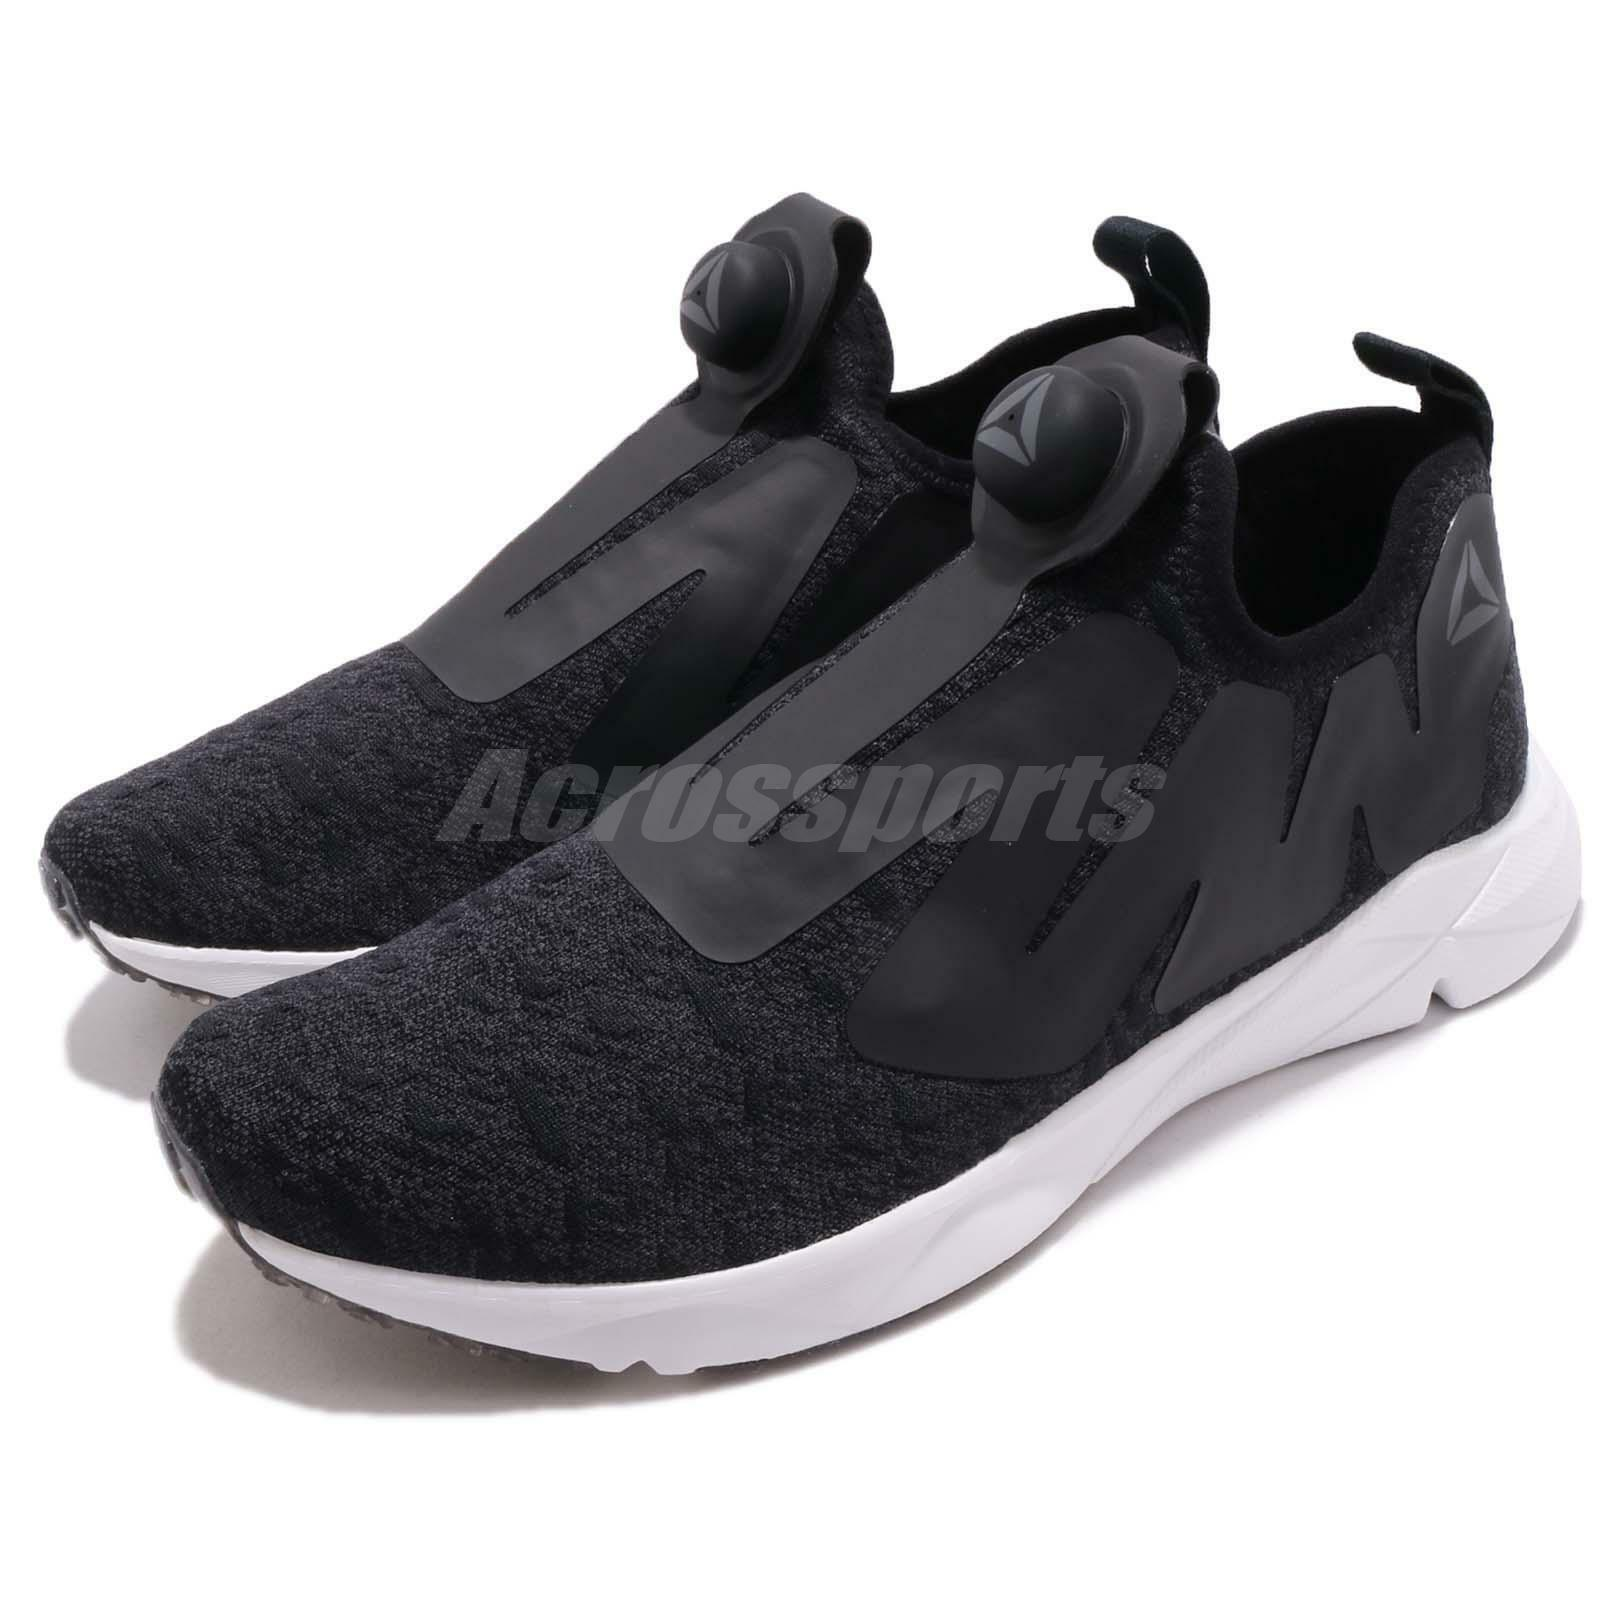 Reebok Pump Supreme Ice Noir Gris Blanc Men Running Chaussures Baskets CN2940